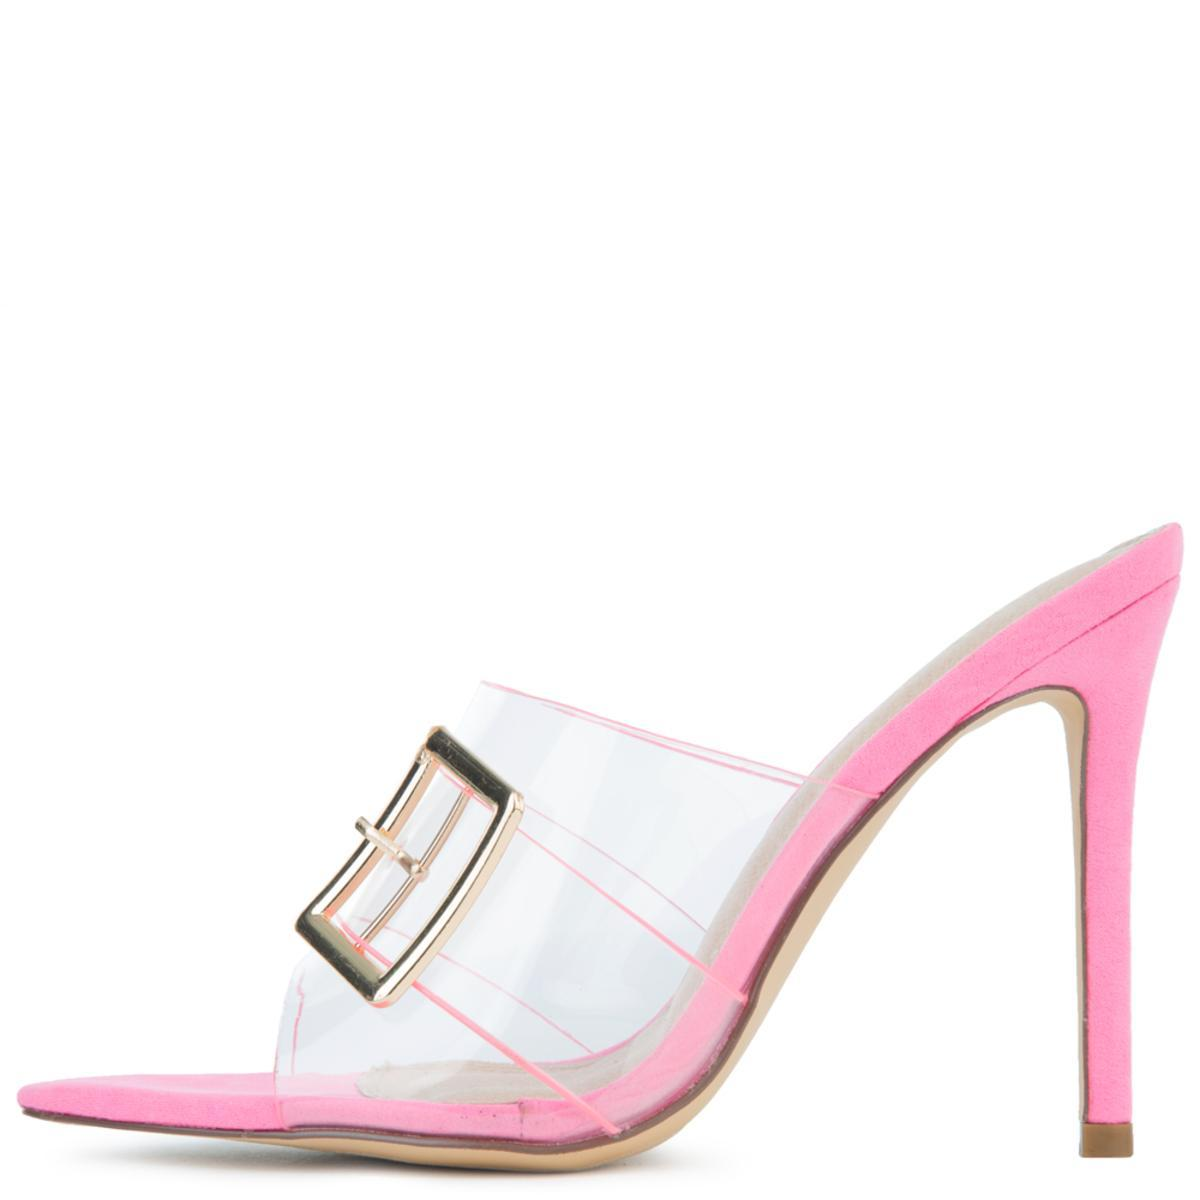 WOMEN'S NERVADA-15 HIGH HEEL